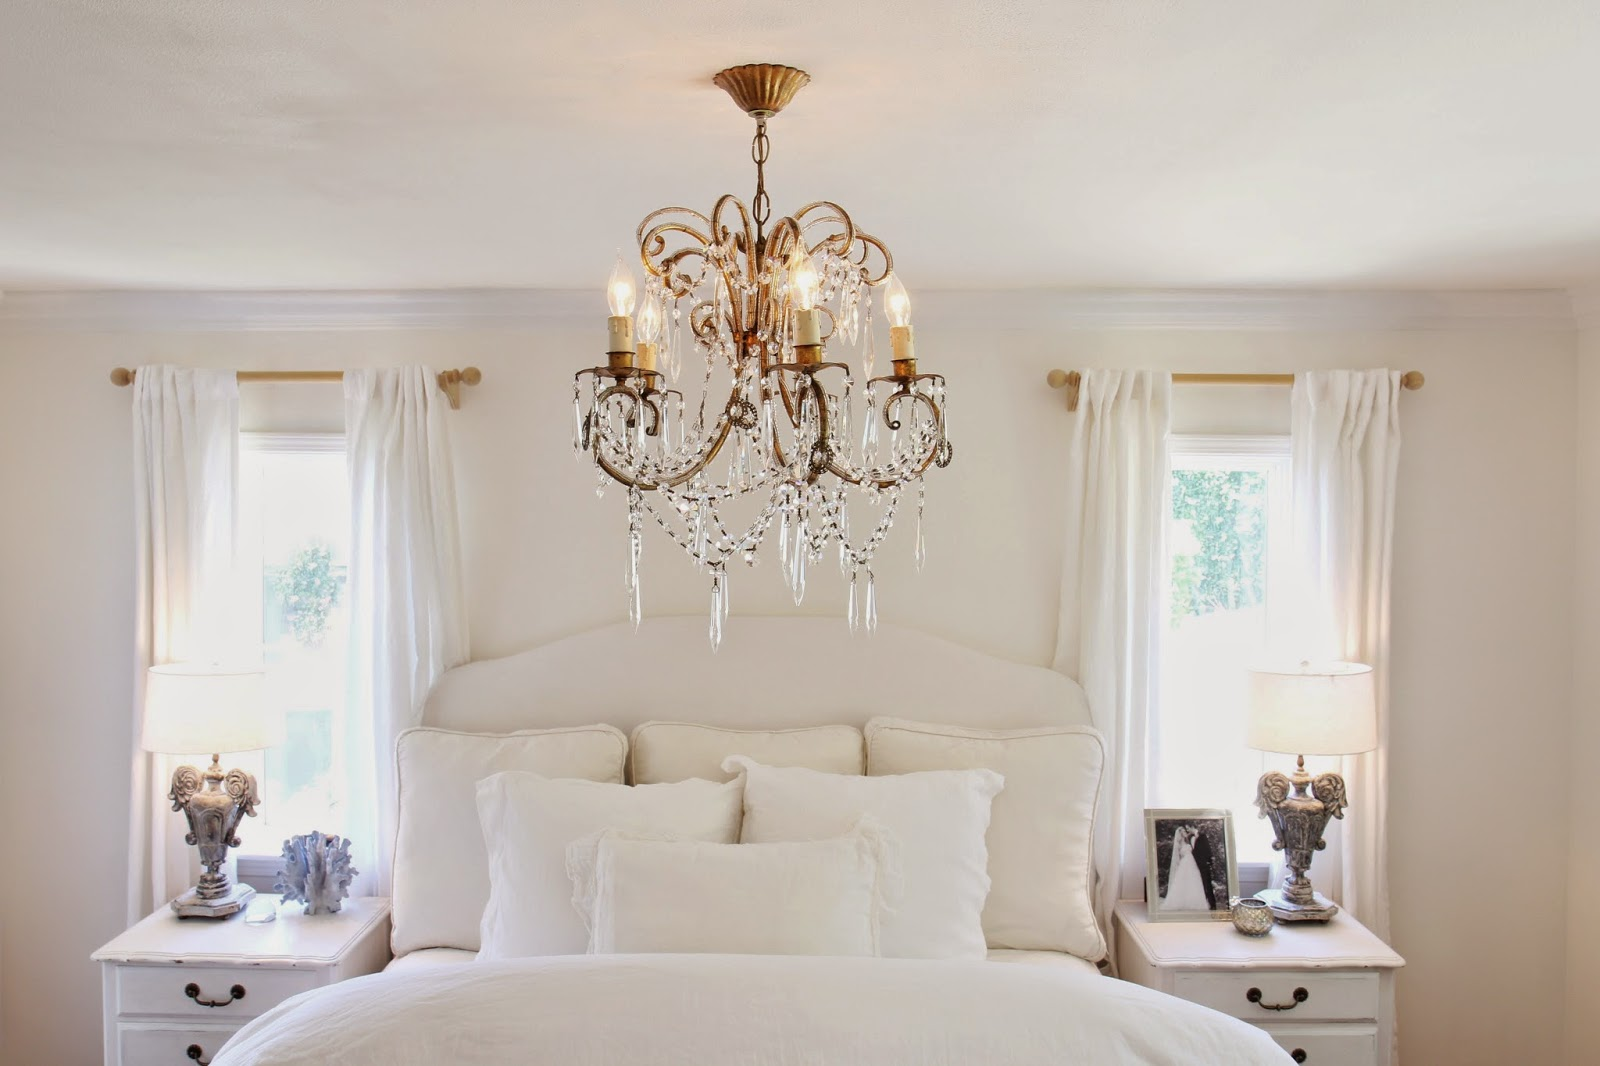 Nora 39 S Nest A Chandelier For The Master Bedroom